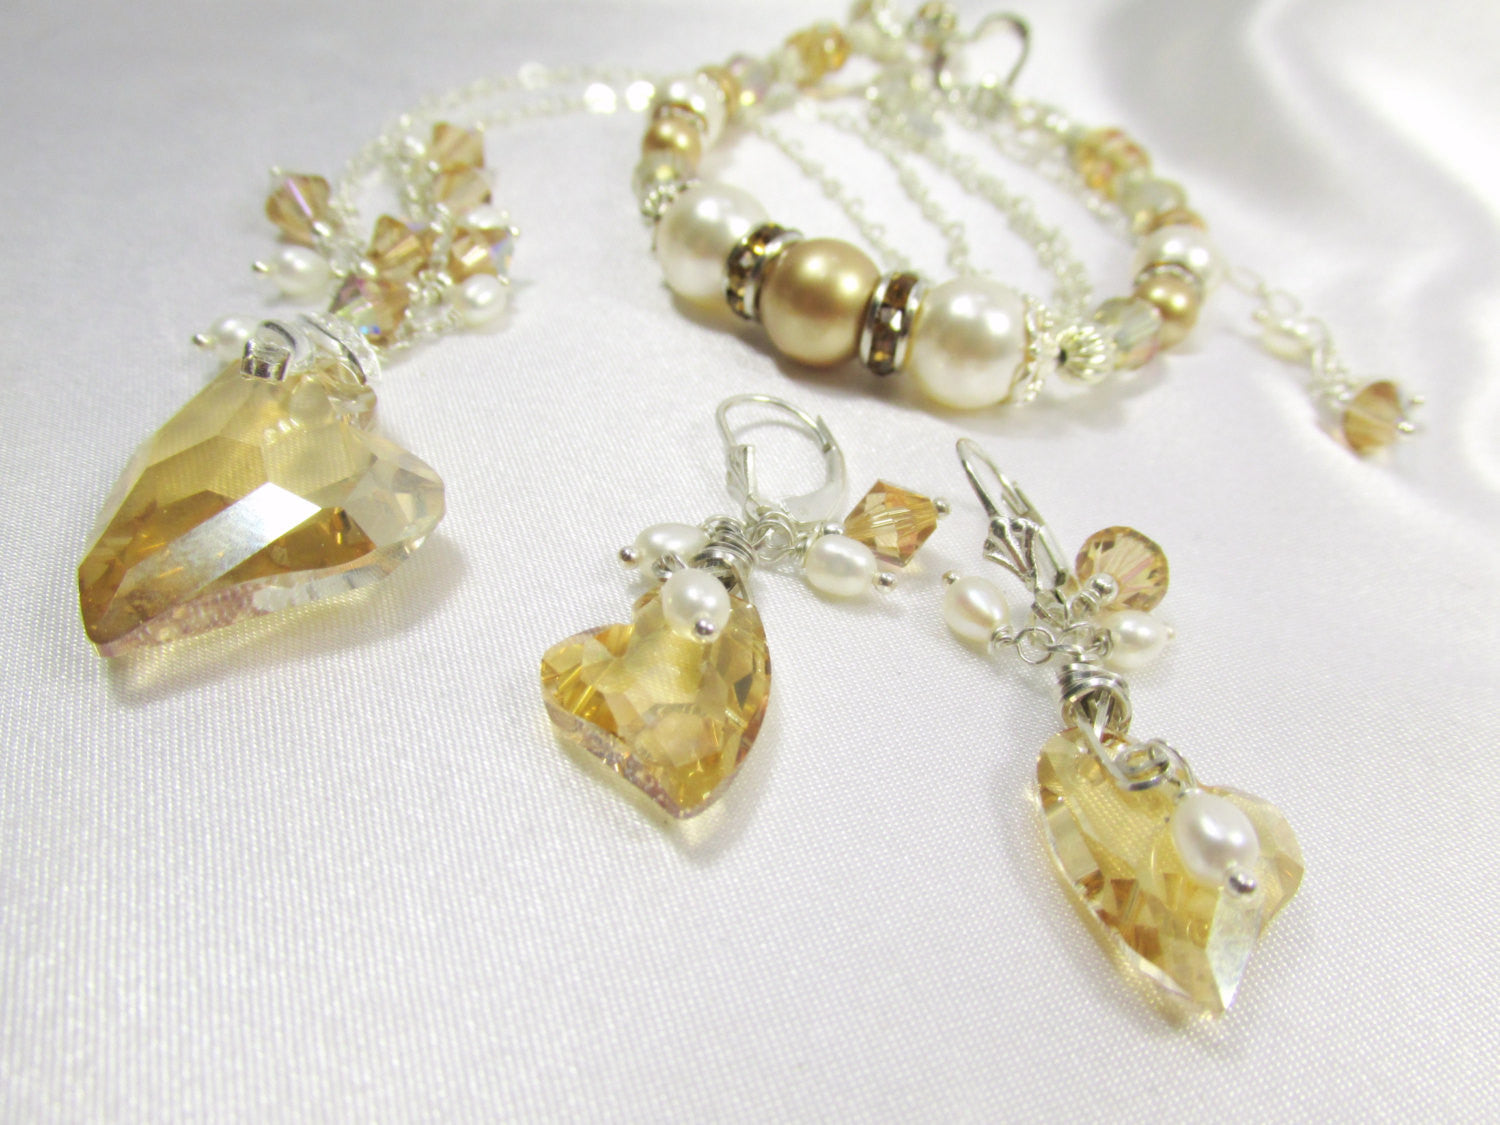 Golden Shadow Swarovski Heart Earrings with White Freshwater Pearls - Odyssey Creations